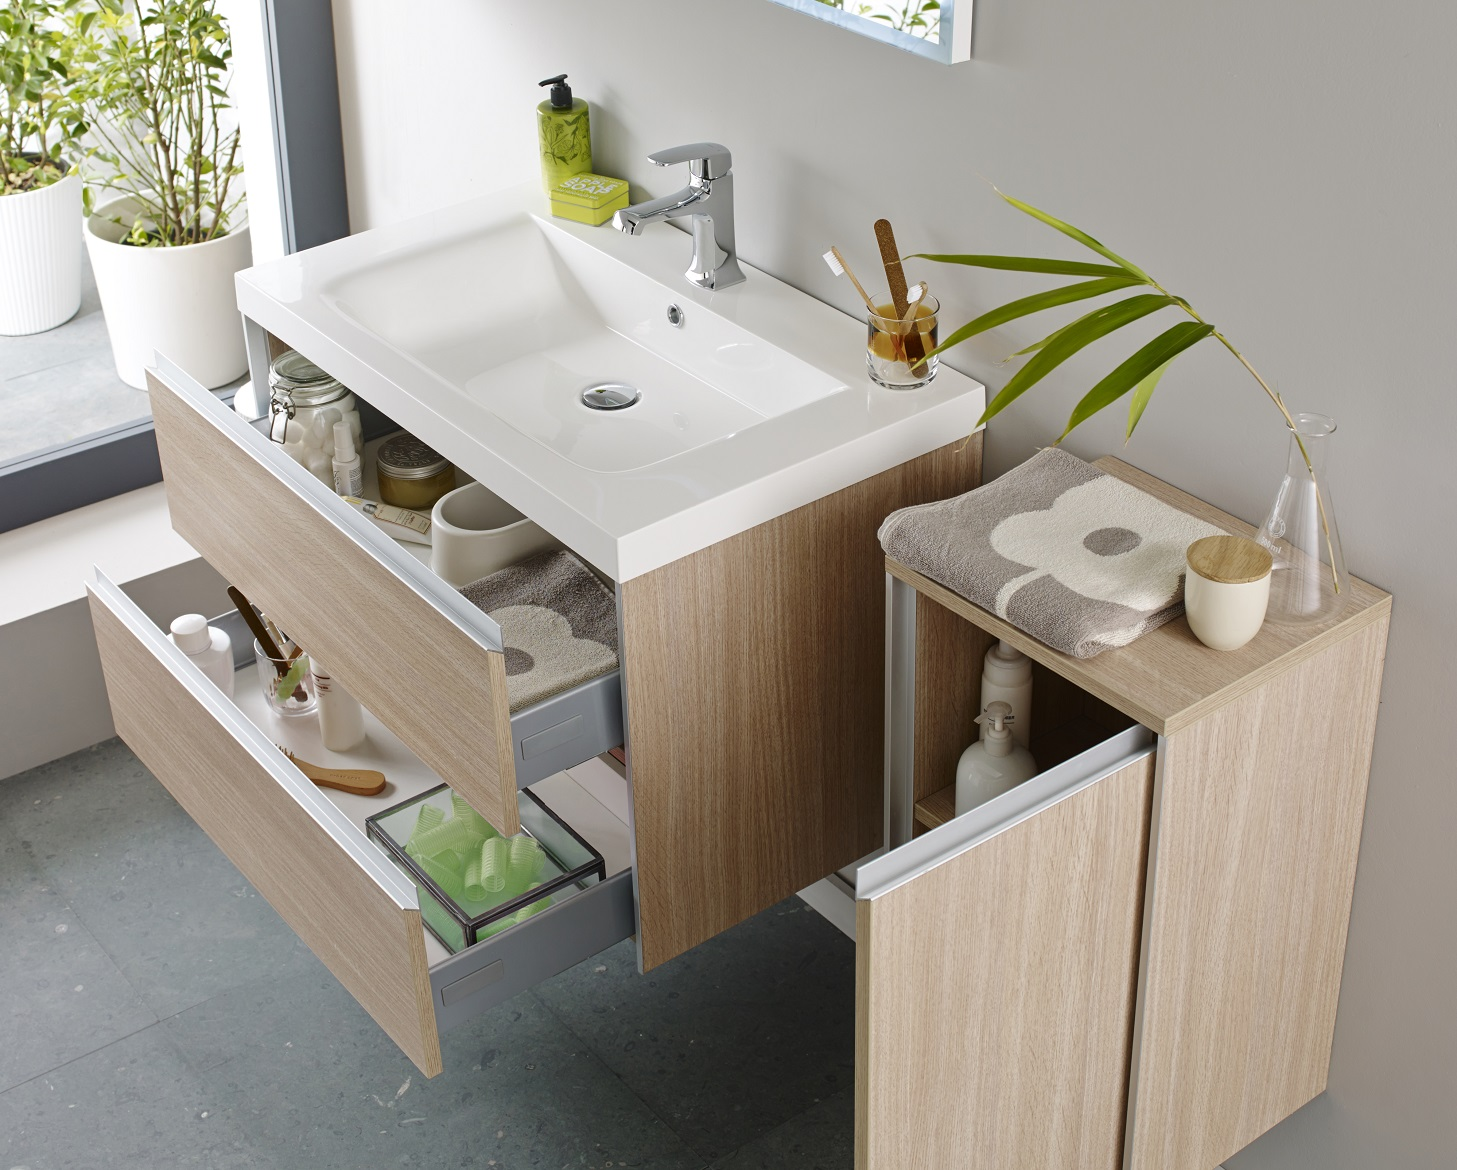 Storage was provided by fitting a vanity draw basin unit bathroom - The Main Purpose Of A Vanity Unit Is To Add Essential Storage Space To Your Bathroom And To Save You From Fitting A Separate Basin And Storage Unit Vanity